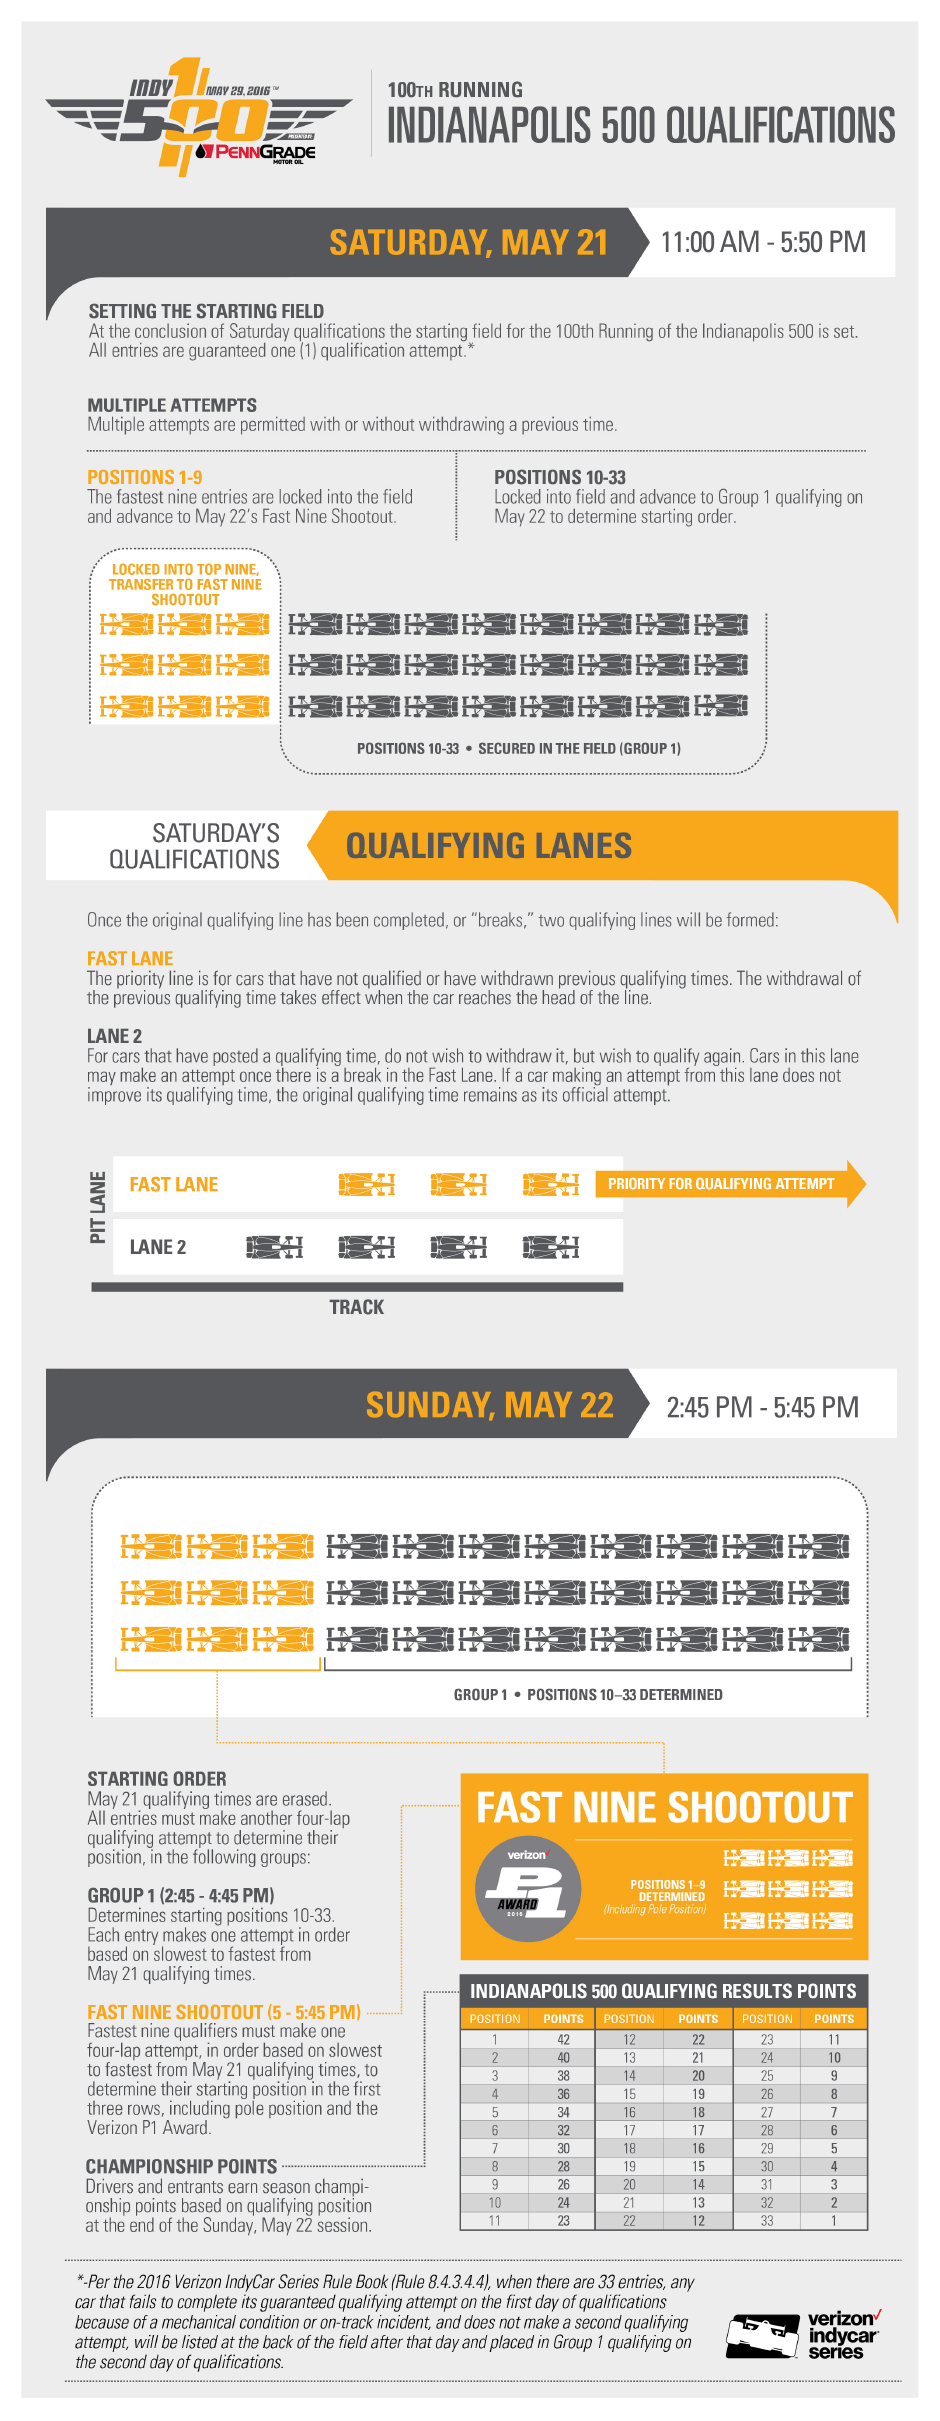 Infographic - 2016 Indianapolis 500 Qualification Rules